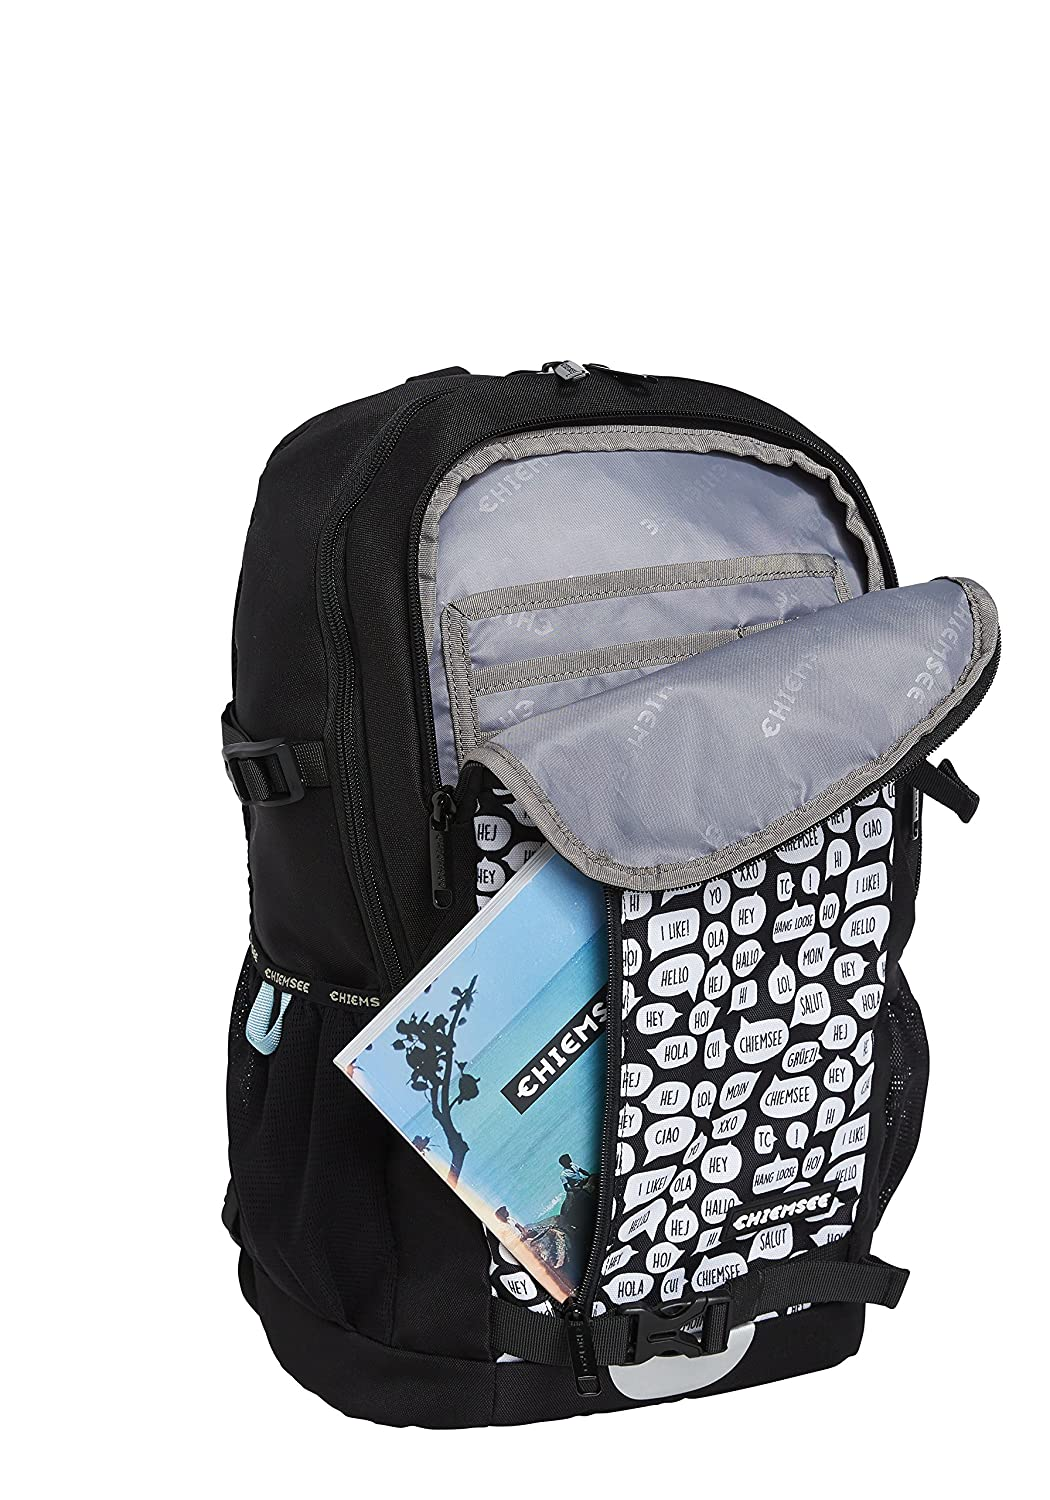 aae54bf1254 Chiemsee Bags Collection School Backpack, 47 cm, Multicolour (1090 White/ Black): Amazon.co.uk: Luggage